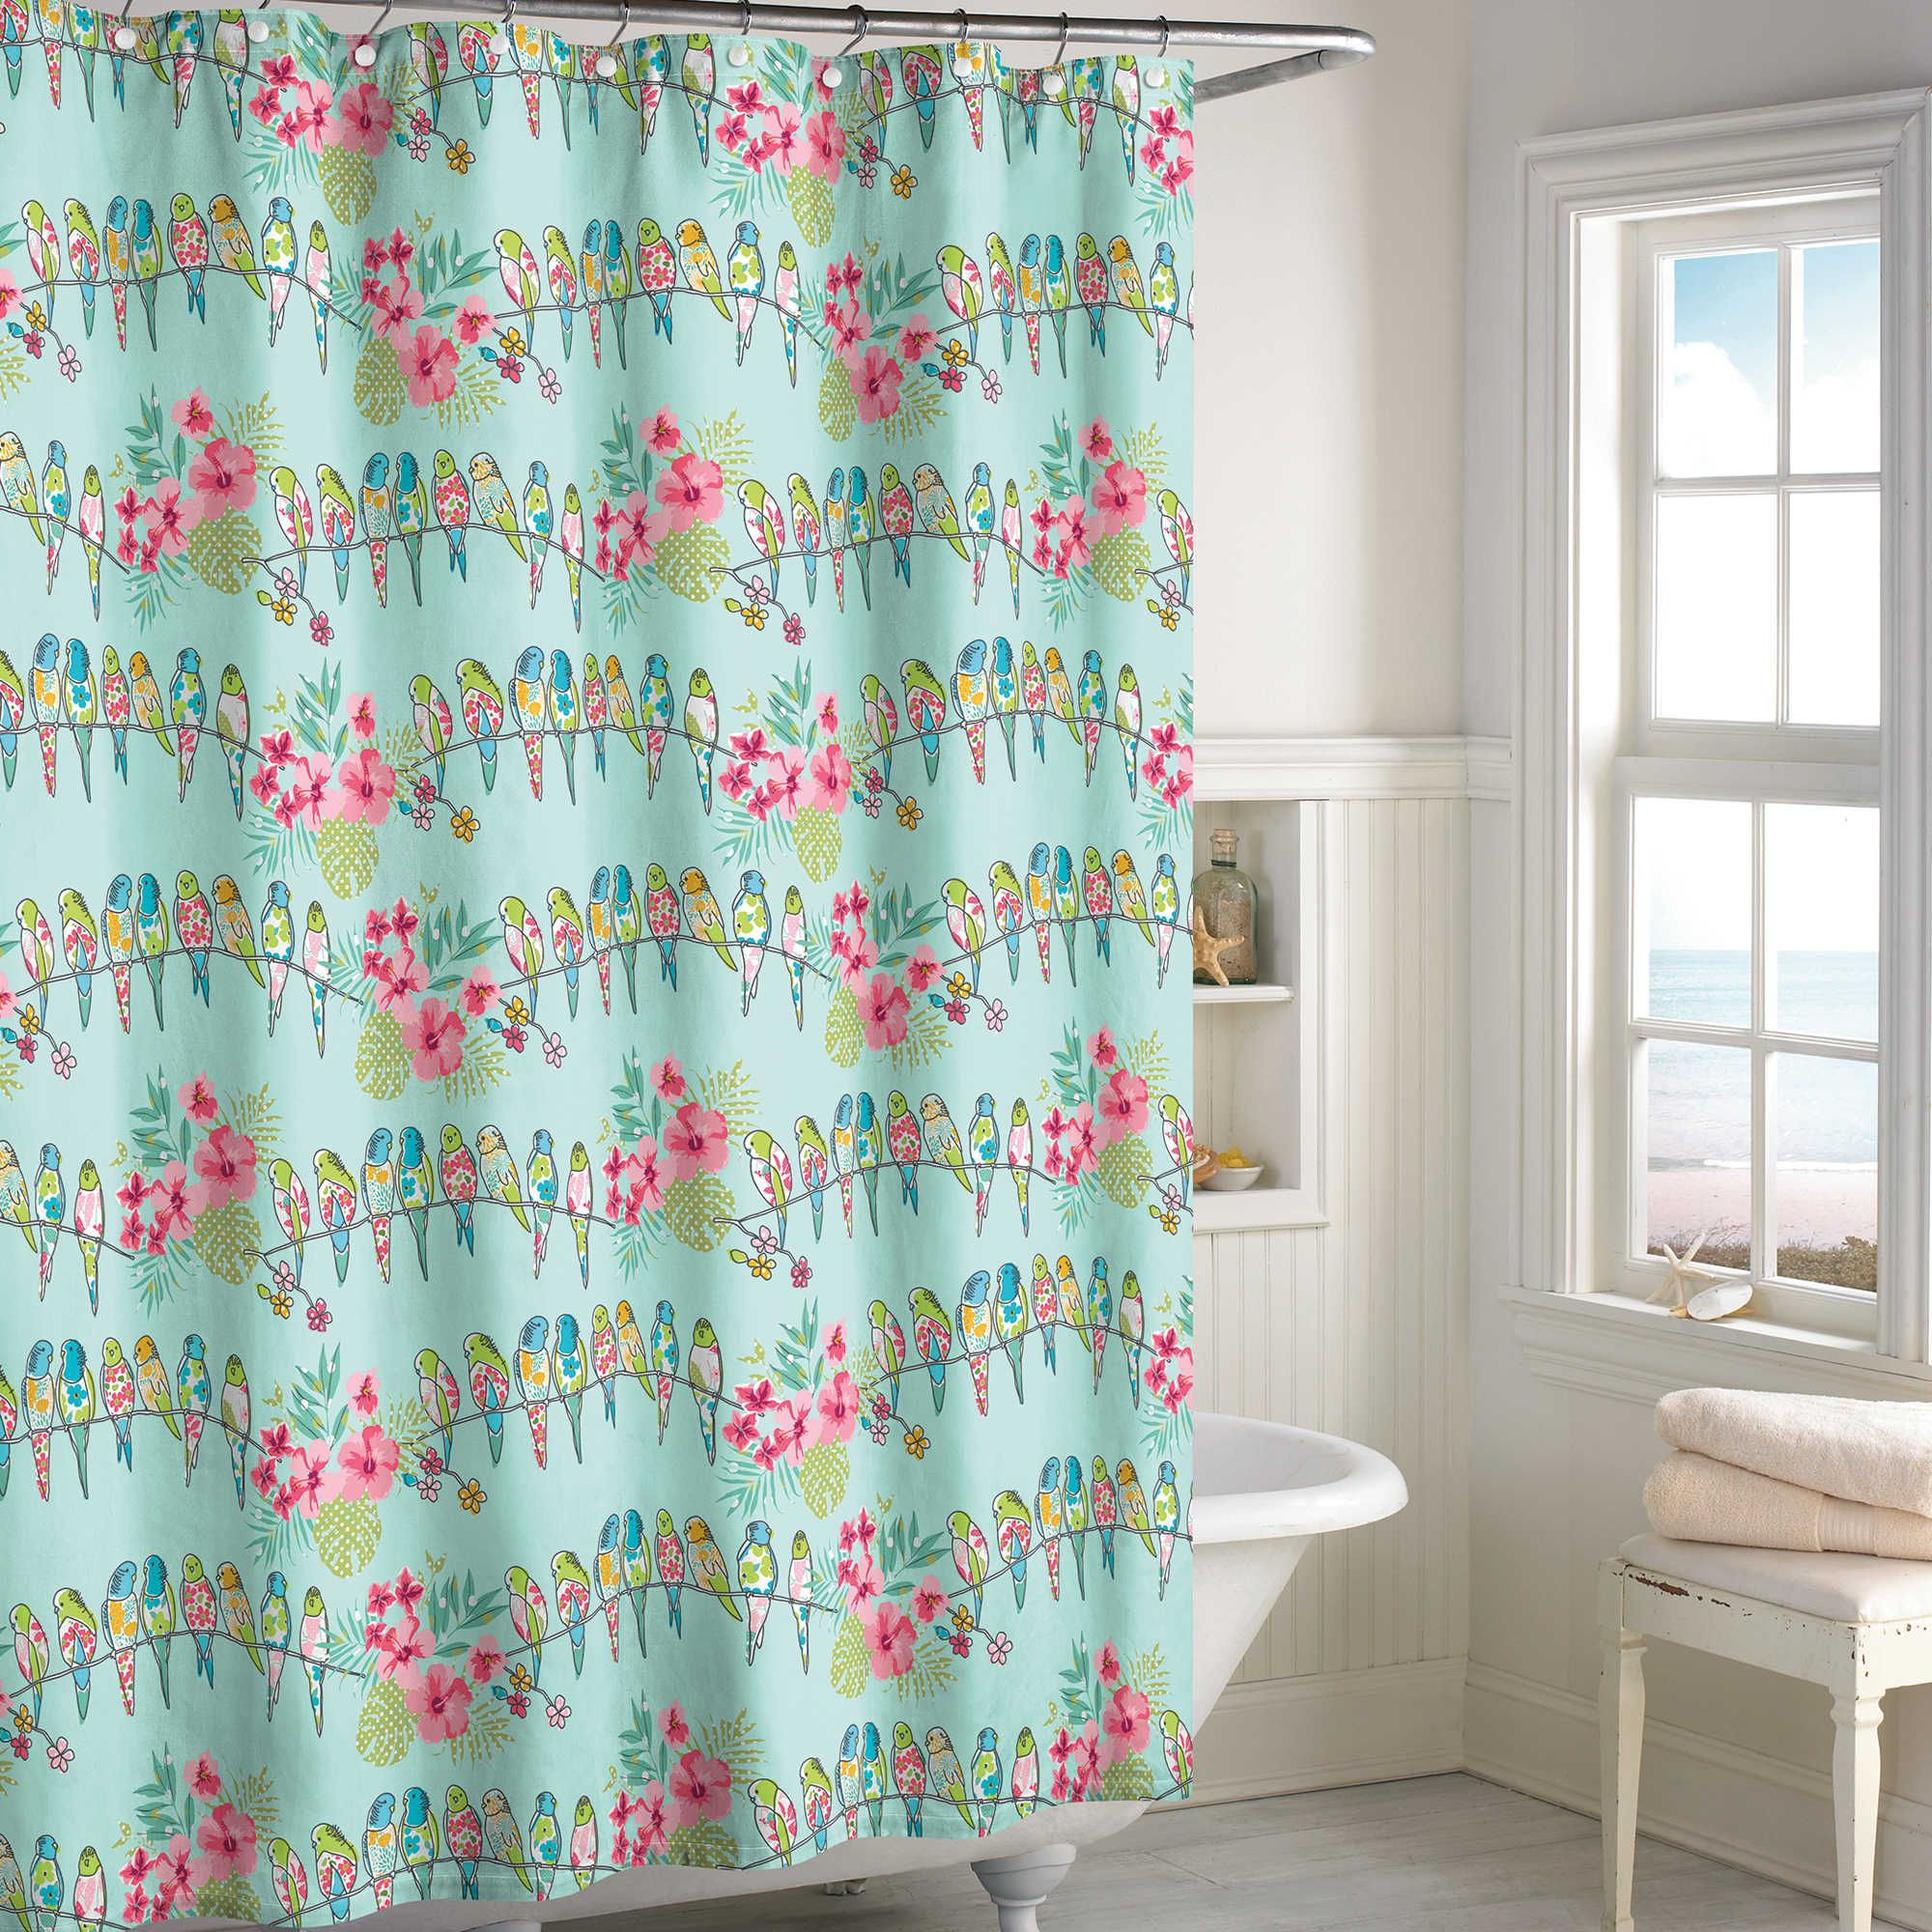 Tropical Bird Shower Curtain With Images Bird Shower Curtain